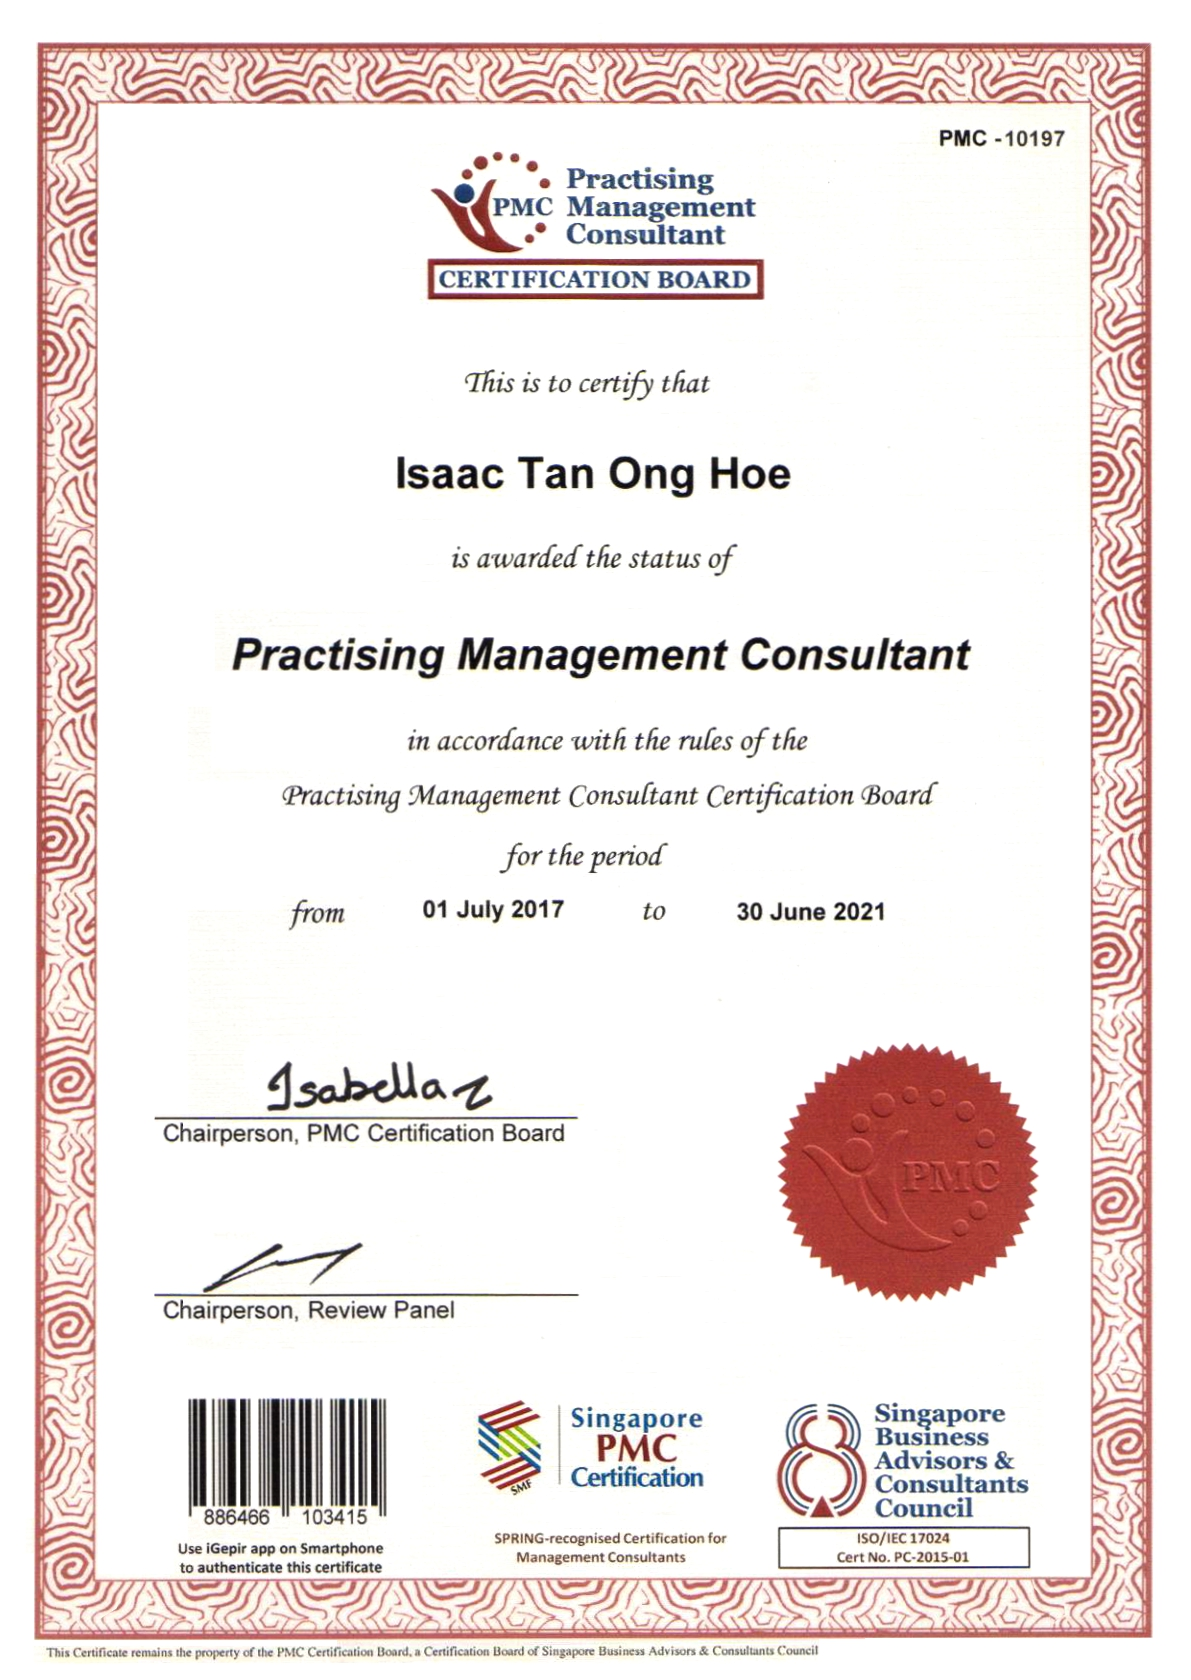 Mindscape spring approved tr 432015 certified management consultants we are pre qualified to assist smes apply for cdg grants and icv vouchers xflitez Images